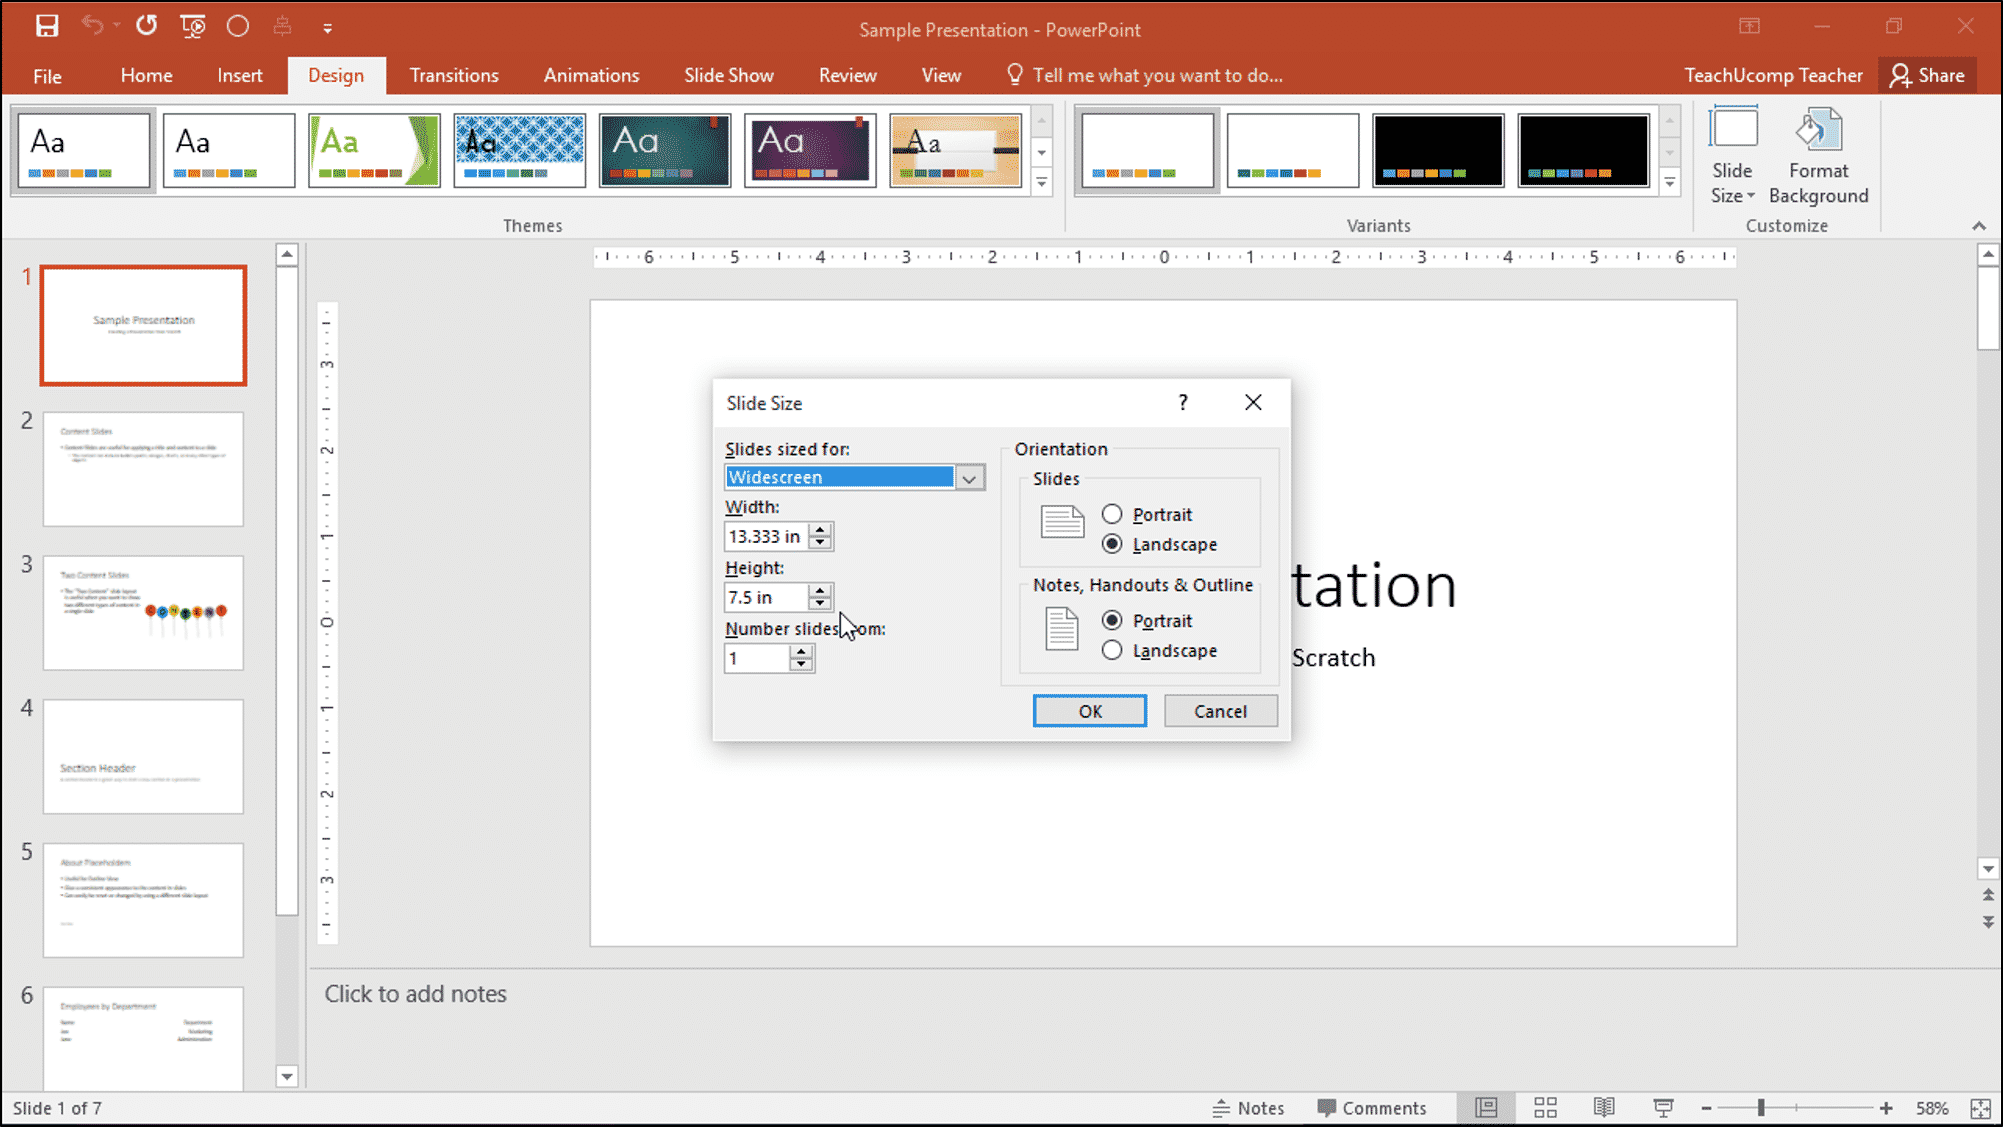 Change the Size of Slides in PowerPoint - Instructions